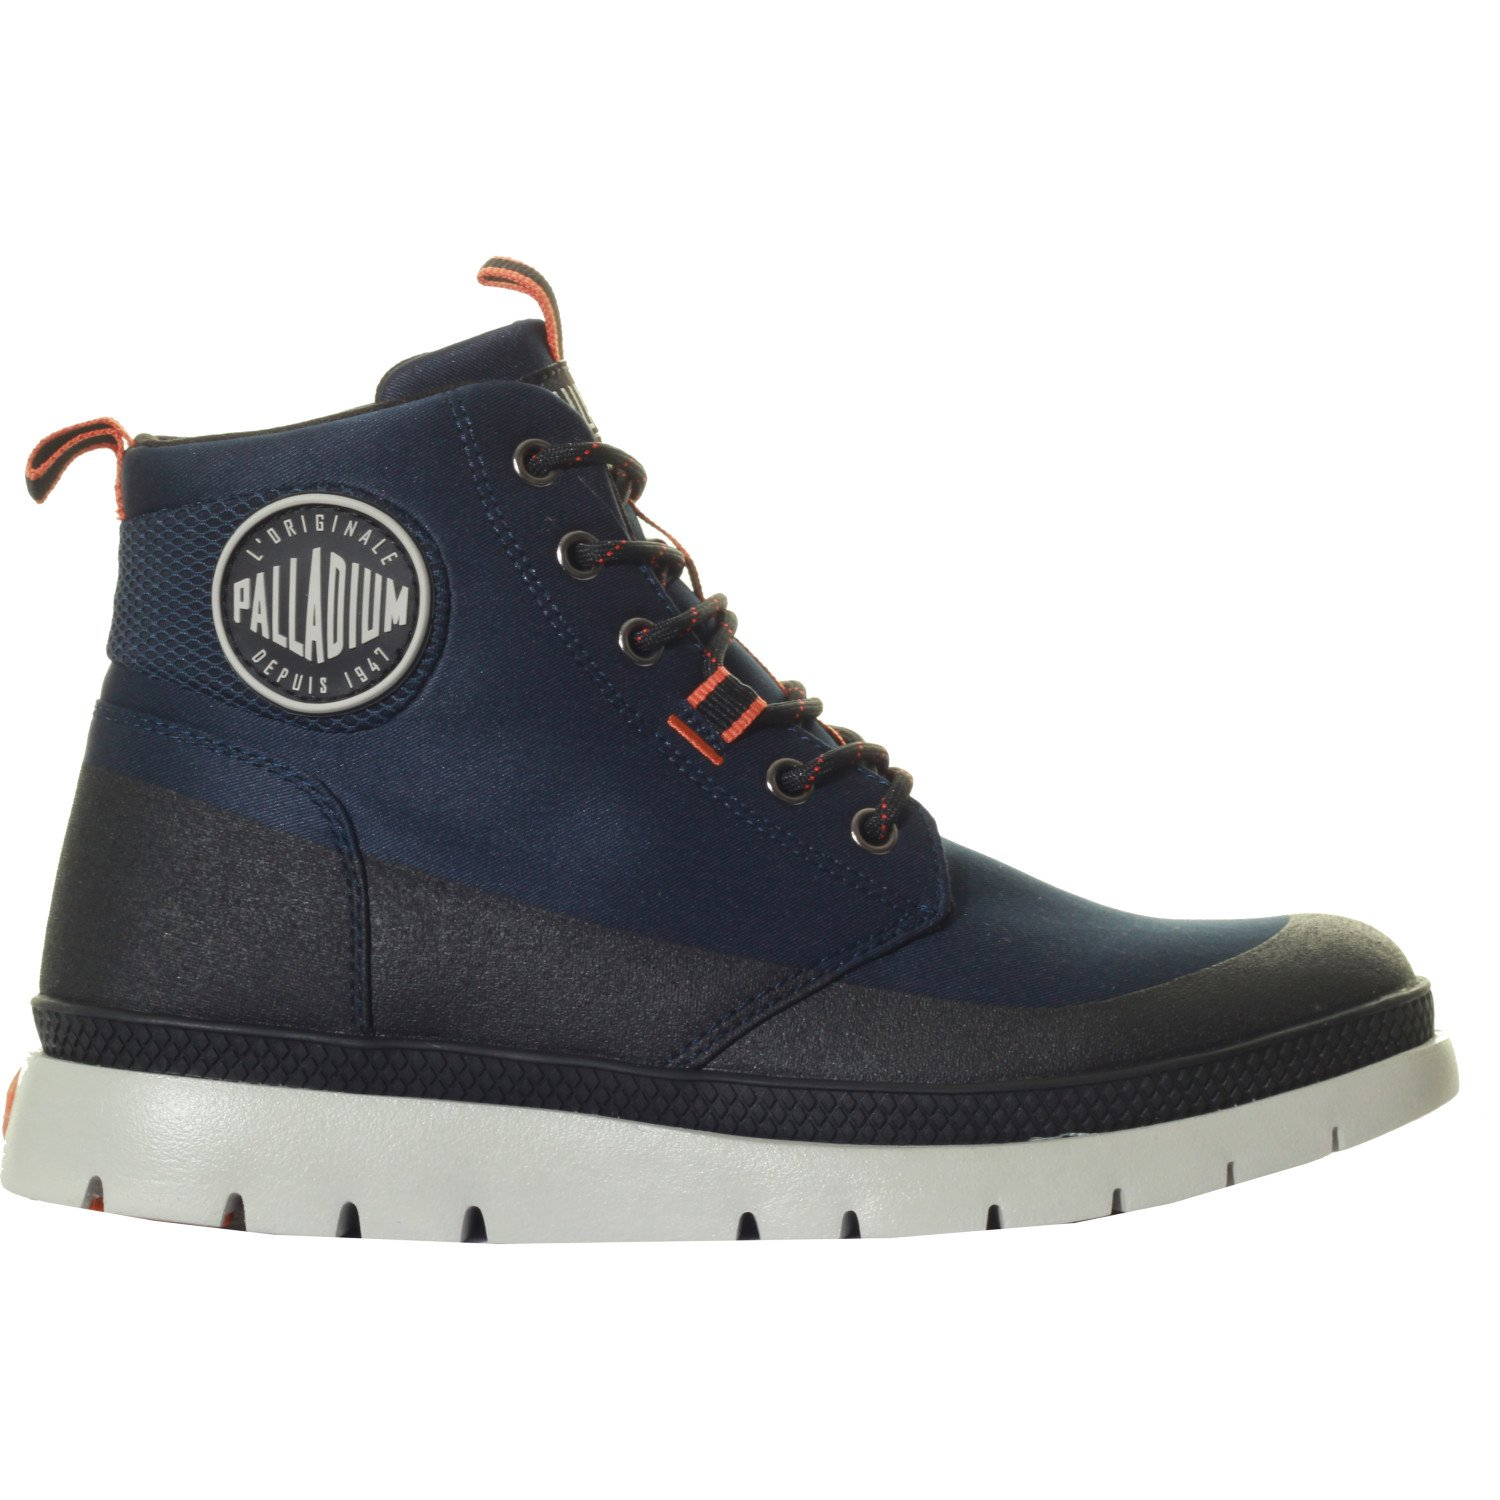 Palladium Pallasider Coated Mid Boots UK 10 Indigo Black